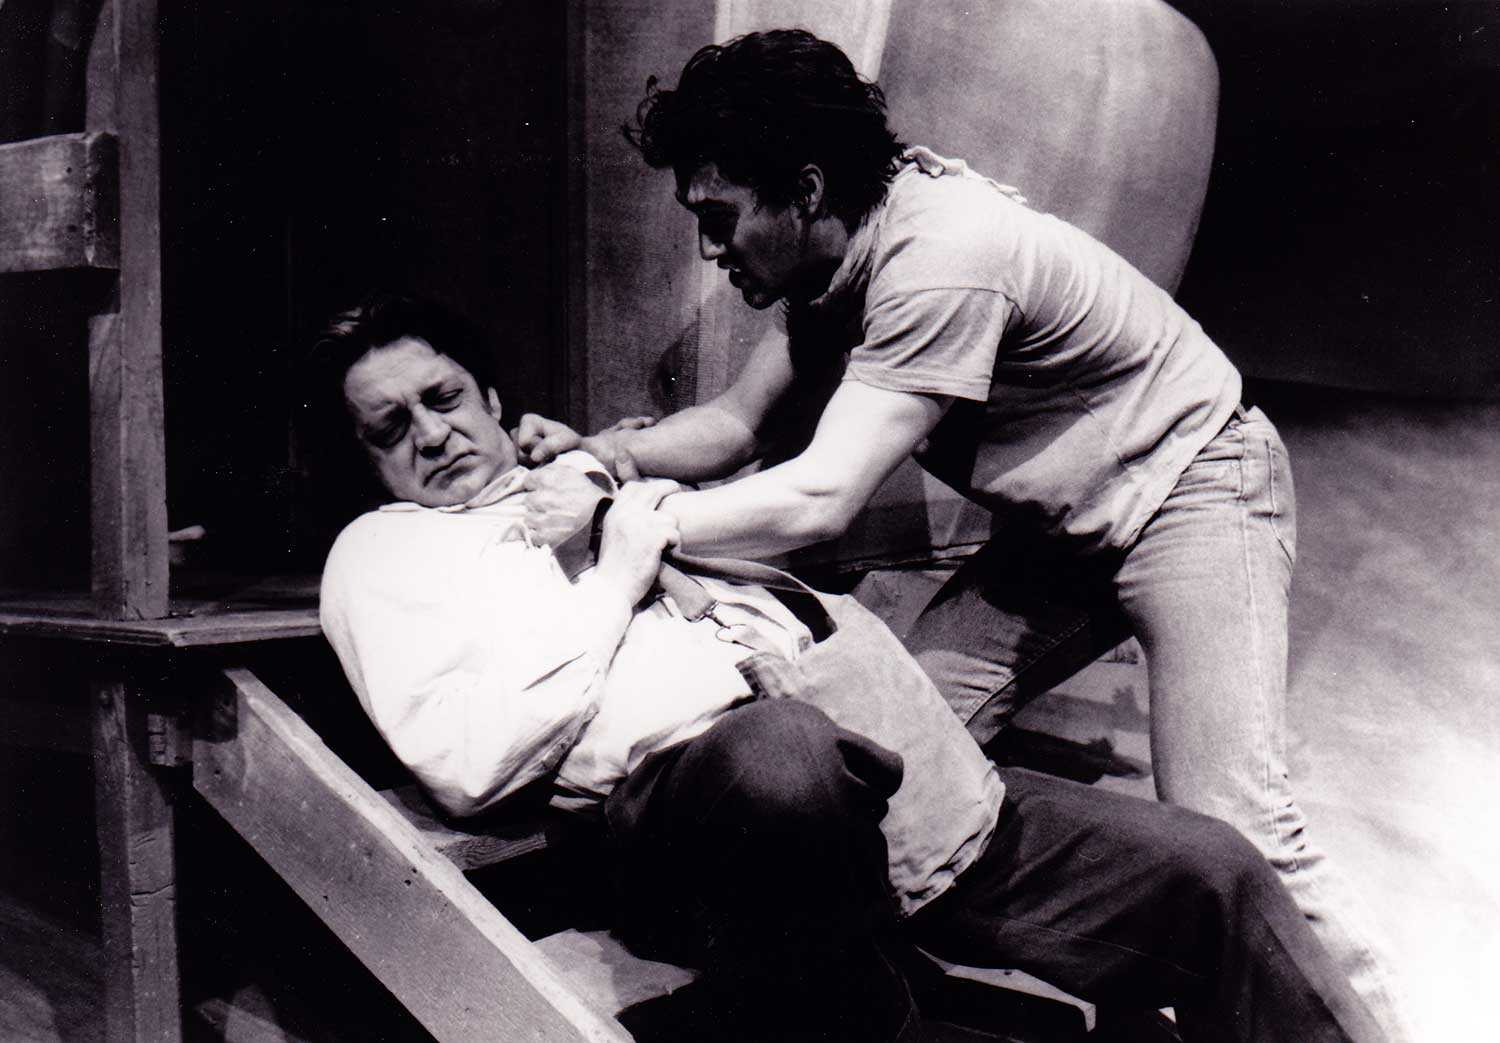 A scene from Le Chien, a play by Jean Marc Dalpé, from Théâtre du Nouvel-Ontario's 1987-88 season. Used with permission.